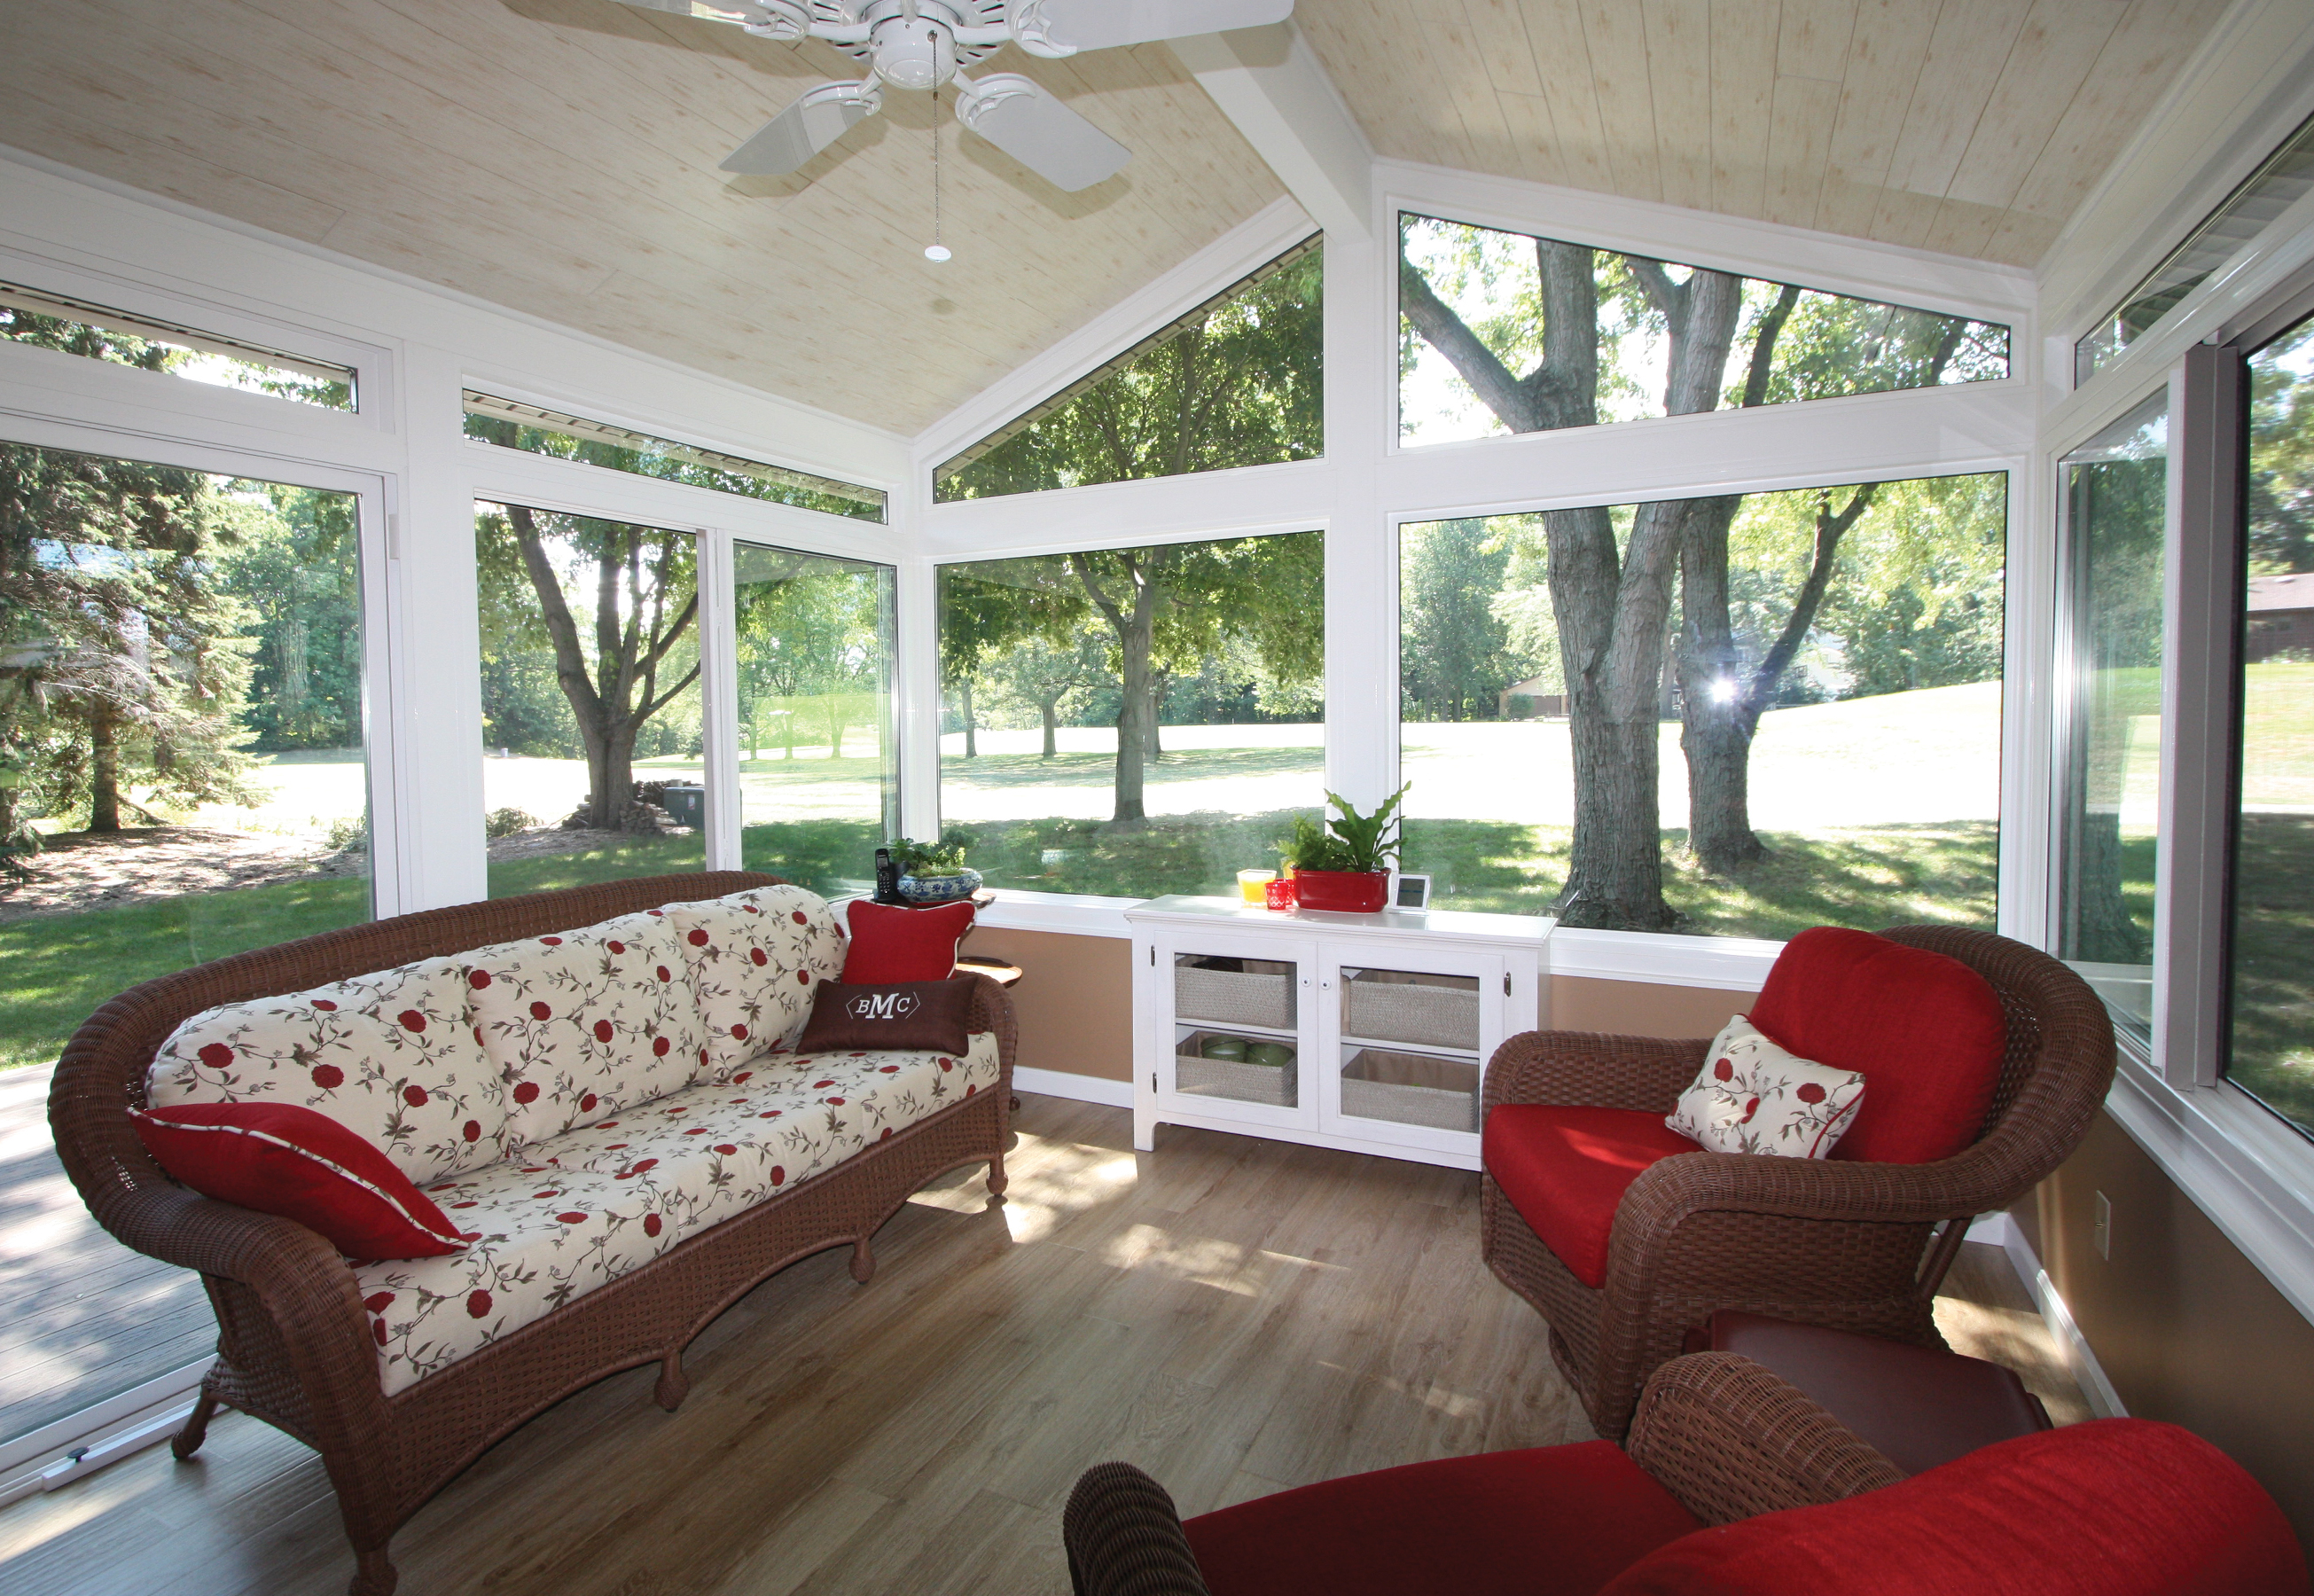 sunroom furniture. simple sunroom with white ceiling fan a set of elegant furniture in red dominant color n